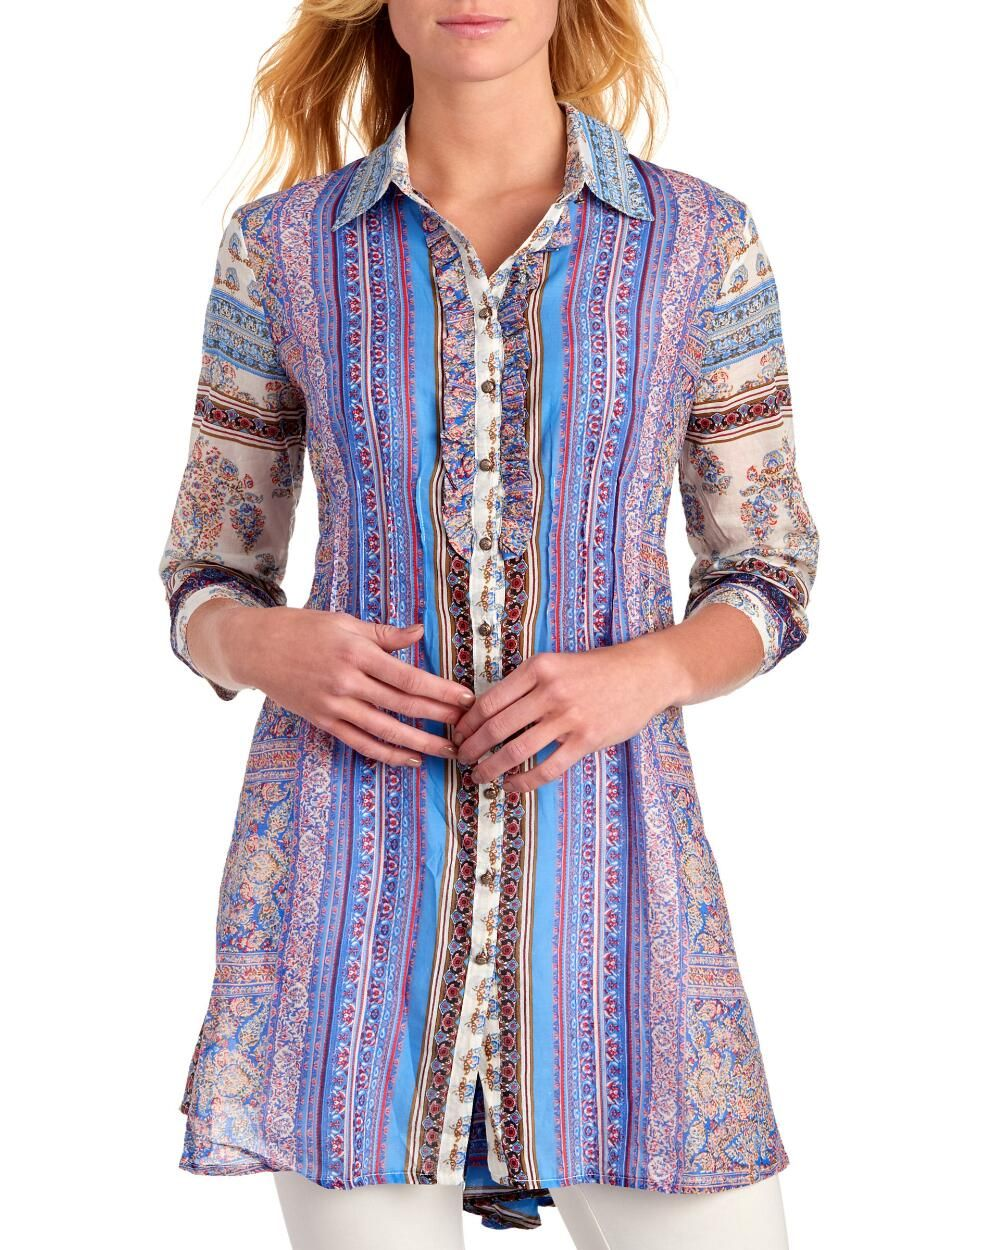 Mixed Stripe Button Front Tunic Tunics Tops Clothing Women Stein Mart Clothes For Women Clothes Casual Dress [ 1250 x 1000 Pixel ]